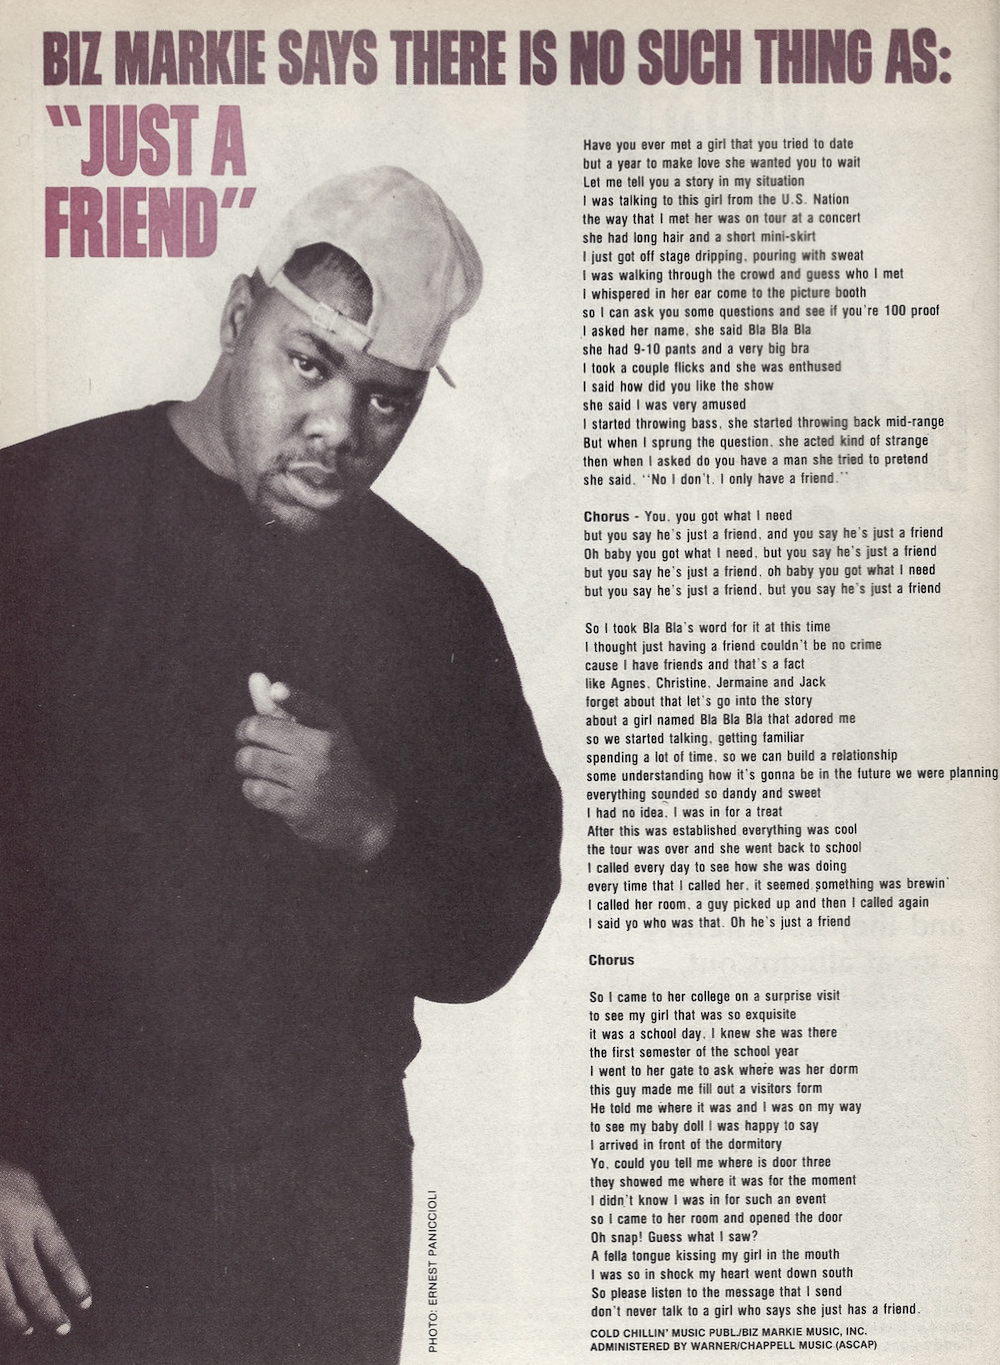 Biz Markie Just a Friend 1989 Lyrics